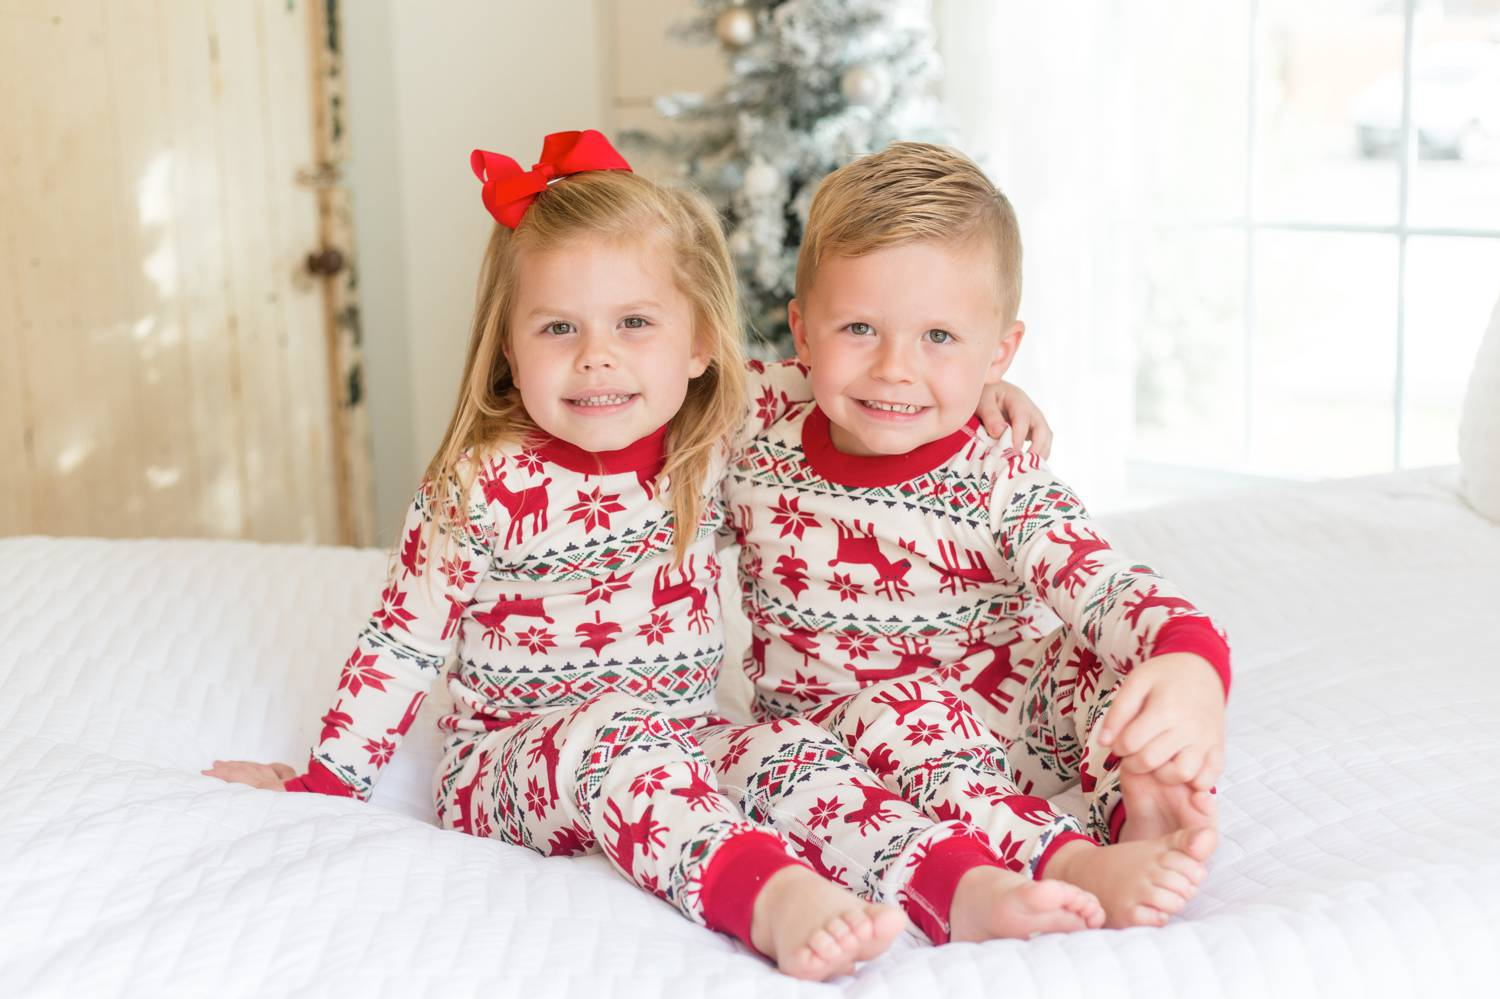 In this photo by Rebecca Rice, toddler twins wearing Christmas pajamas sit on a white-draped bed with their arms around each other as they smile at the camera. Christmas Mini Session: Ideas Families will ADORE!